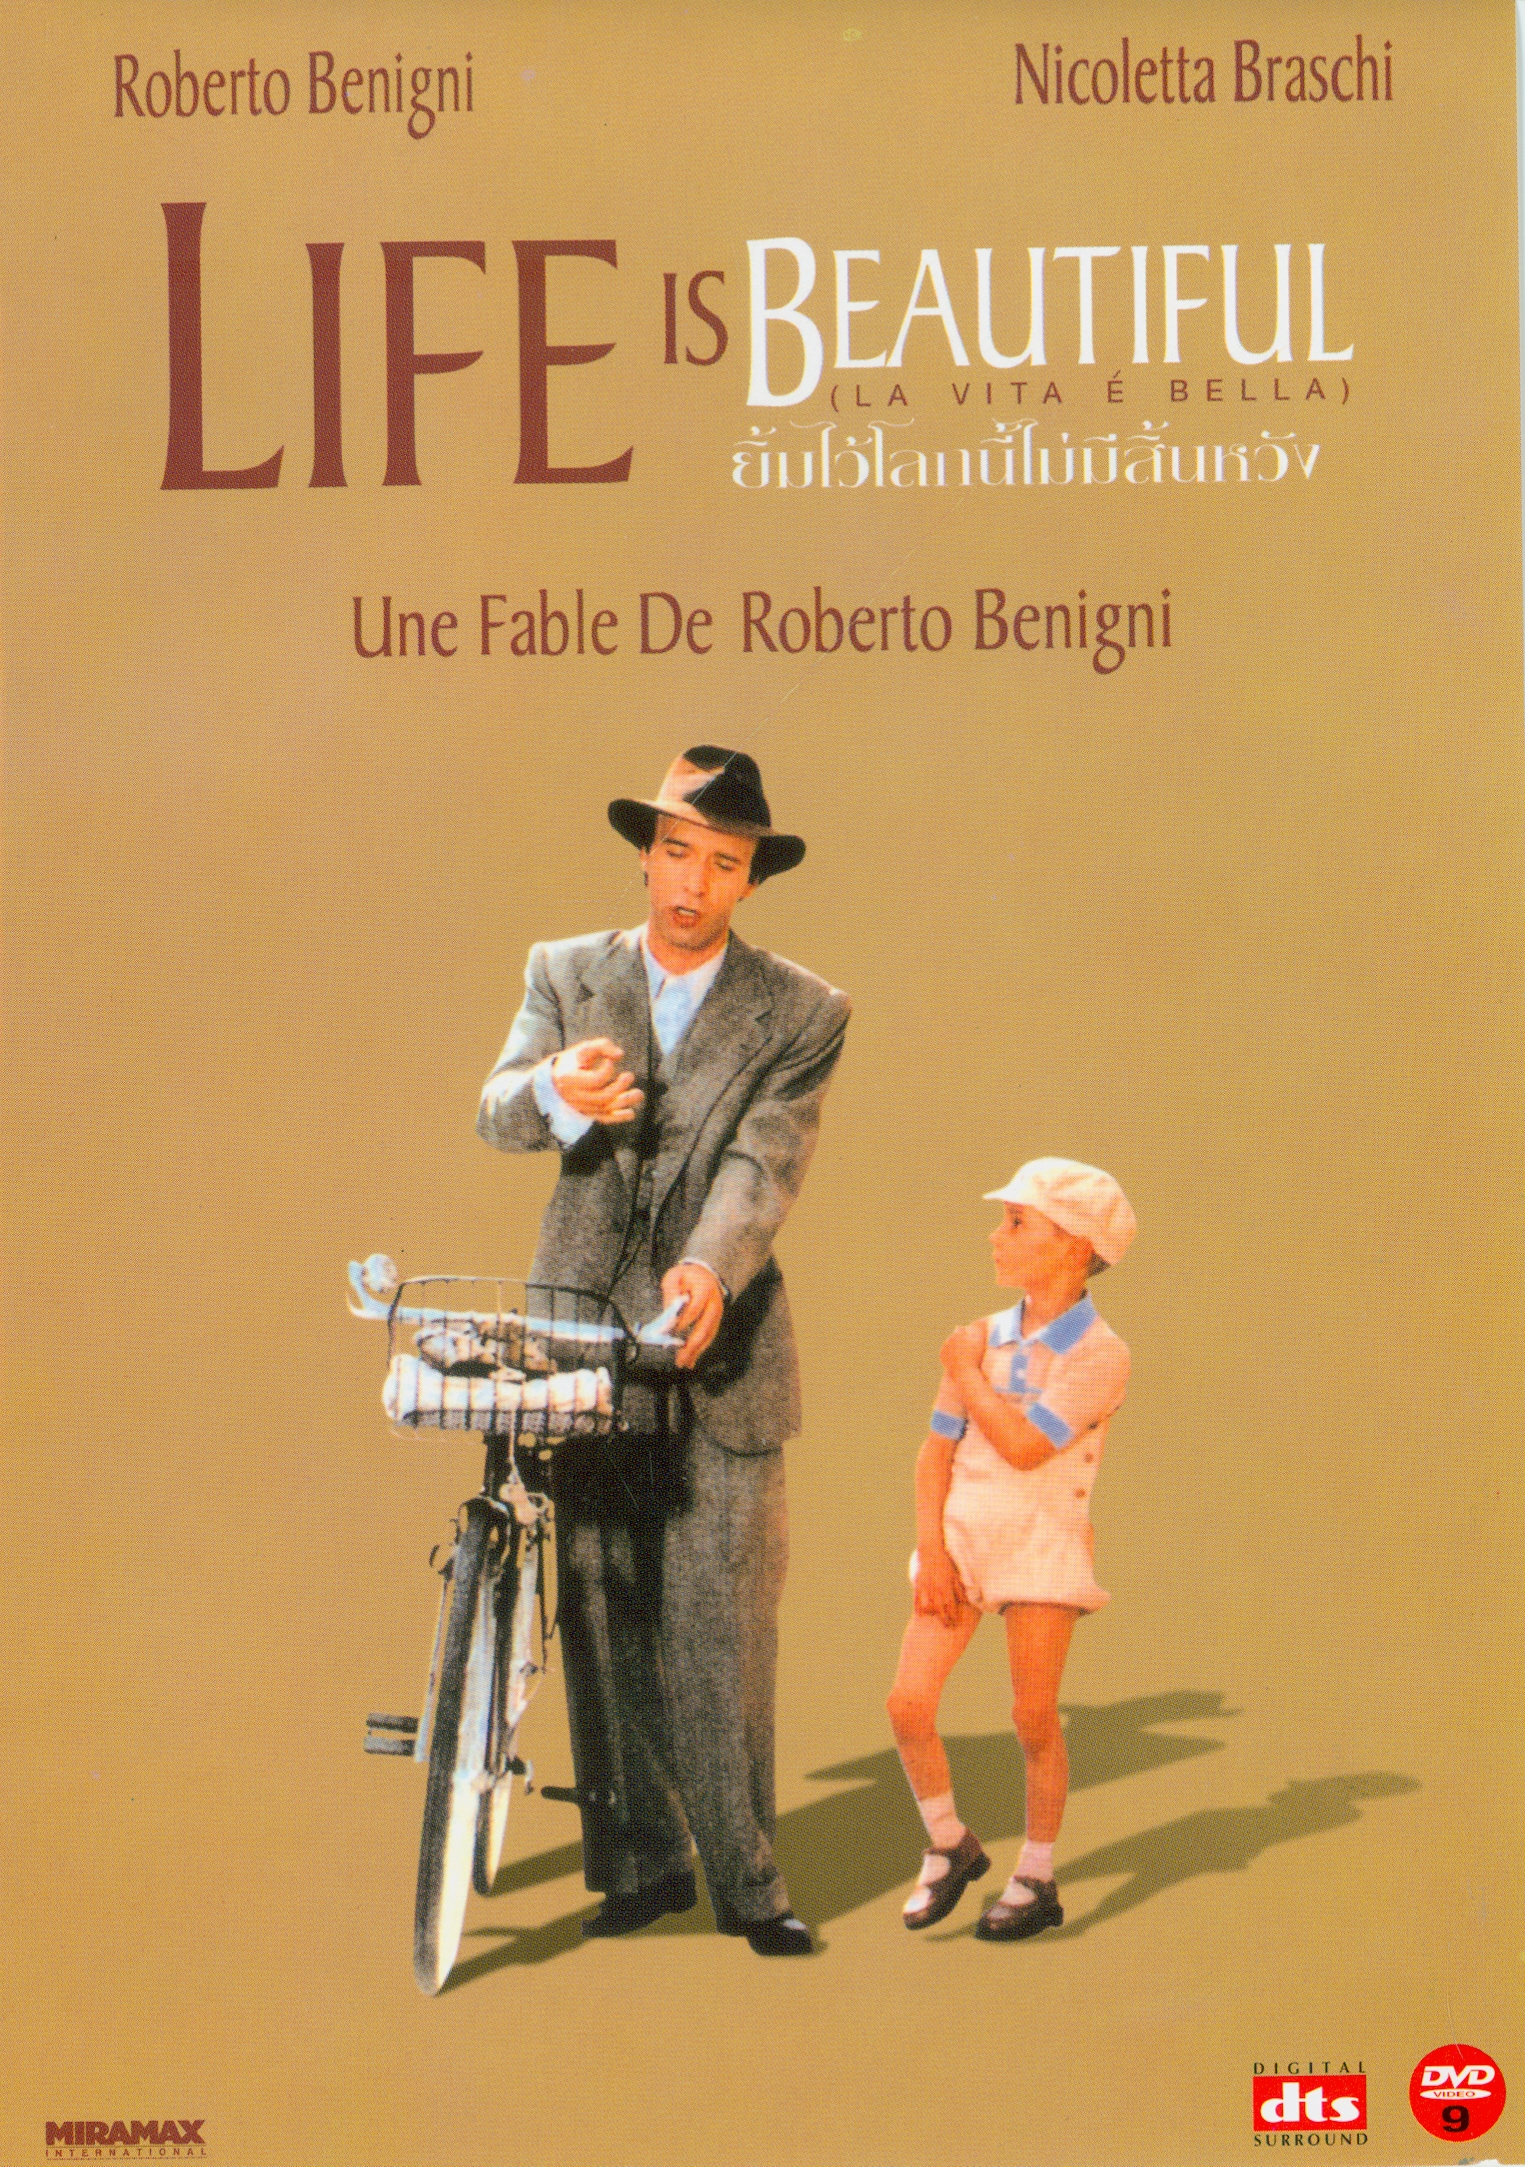 Life is beautiful[videorecording] /Miramax Films ; Cecchi Gori Group ; Mario and Vittorio Cecchi Gori presenta Melampo Cinematografica production ; directed by Roberto Benigni||Vita e bella